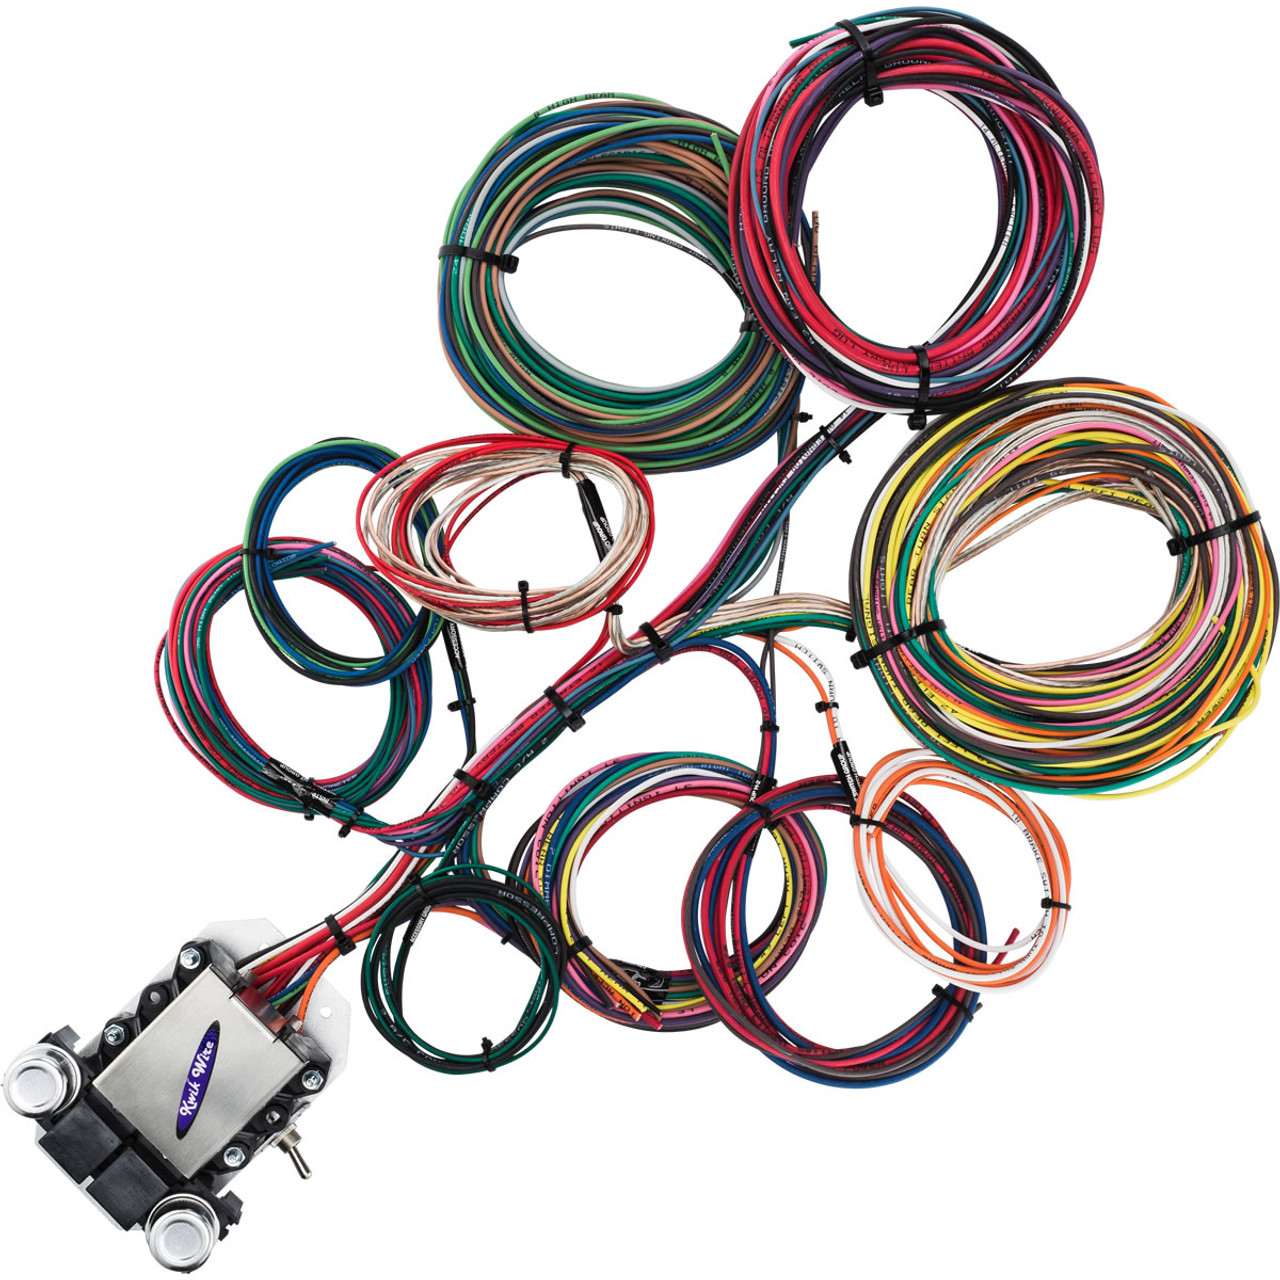 medium resolution of 14 circuit ford wire harness kwikwire com electrify your ride electrical wire harness design software electrical wire harness